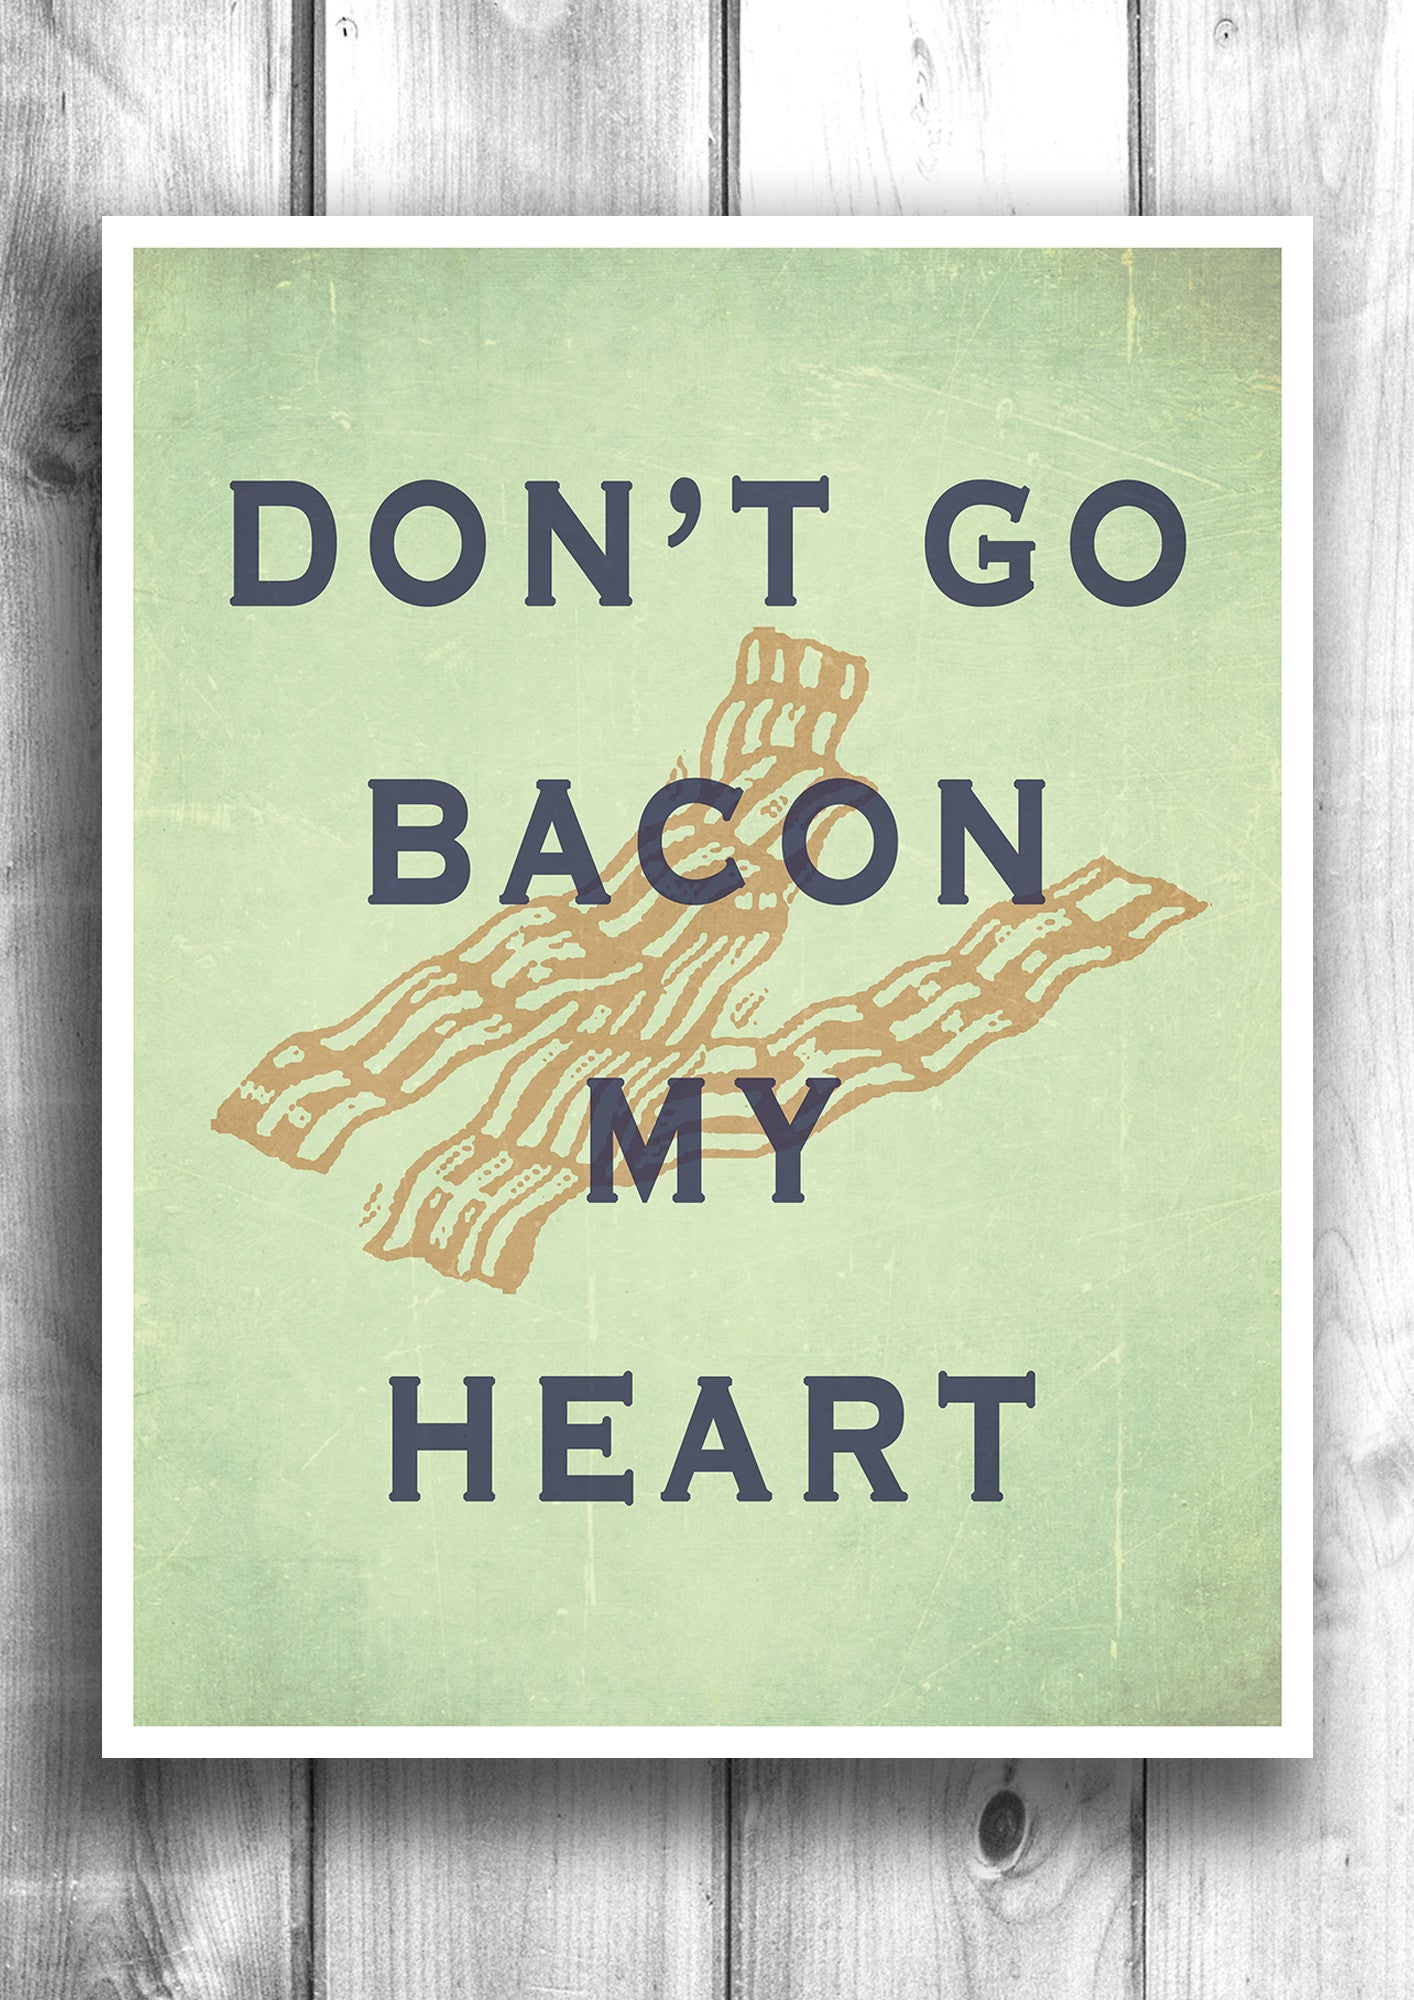 Don't go bacon my heart - Fine art letterpress poster - Typographic print